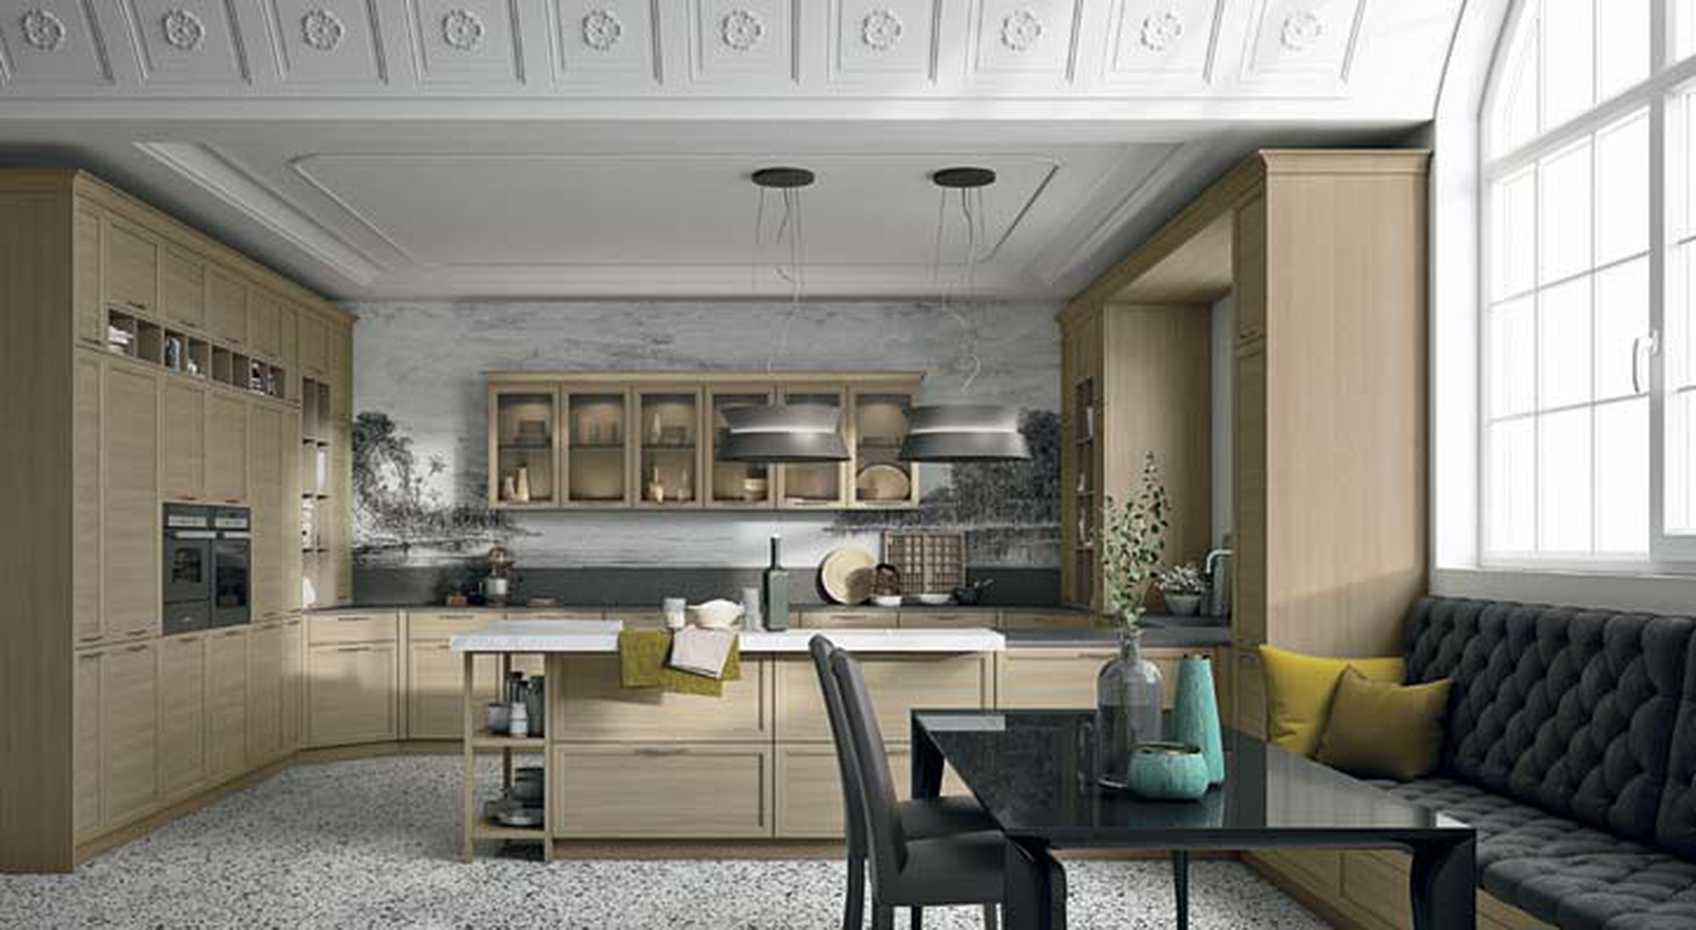 Vogue by Doimo Cucine product image 3